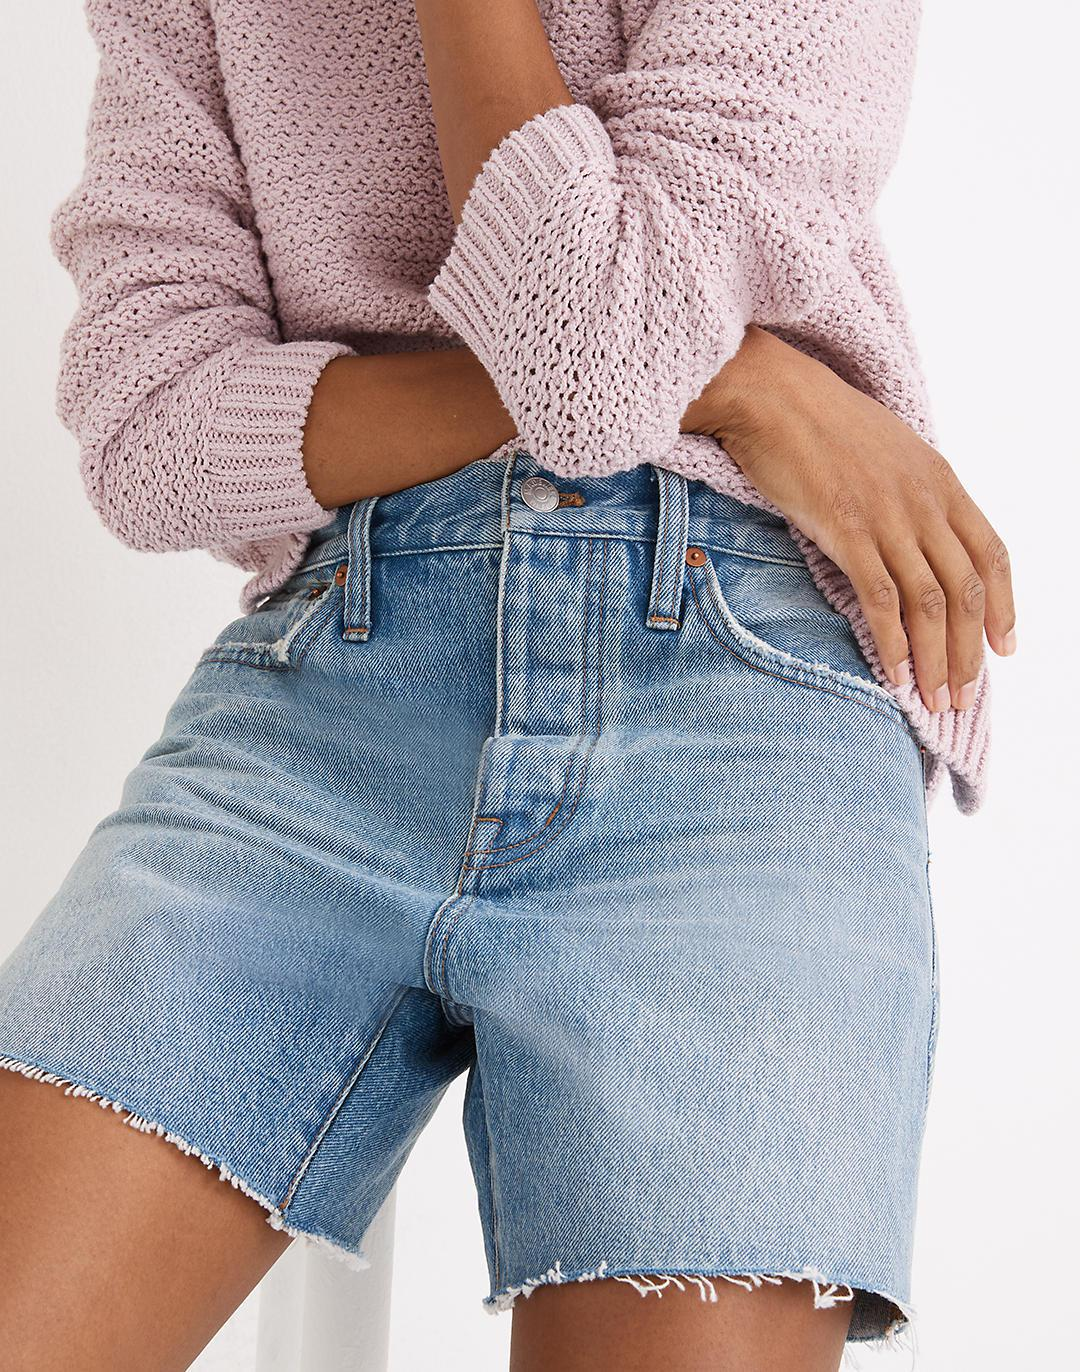 Relaxed Mid-Length Denim Shorts in Scottsburg Wash 2